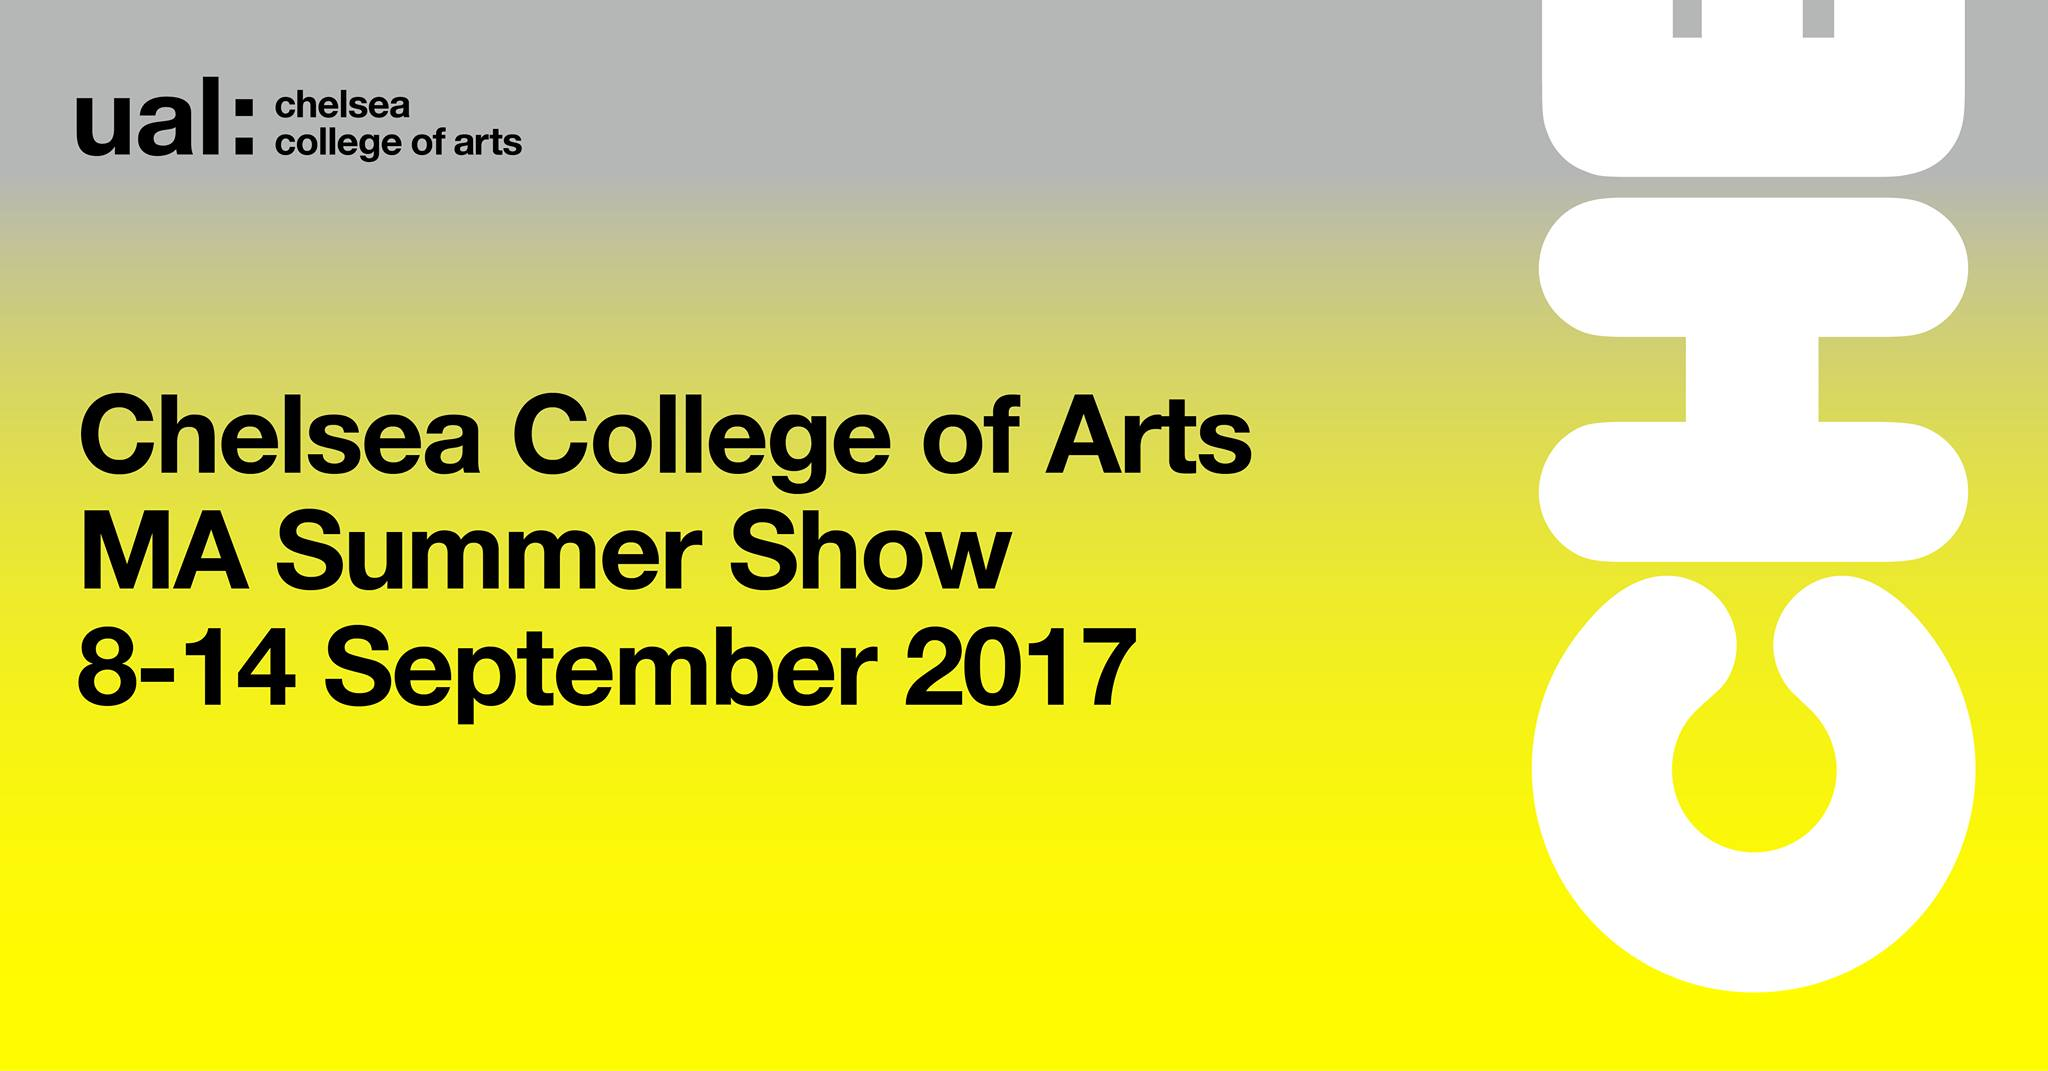 - Chelsea College of Arts MA Summer Show8-14 SEPTEMBER 2017